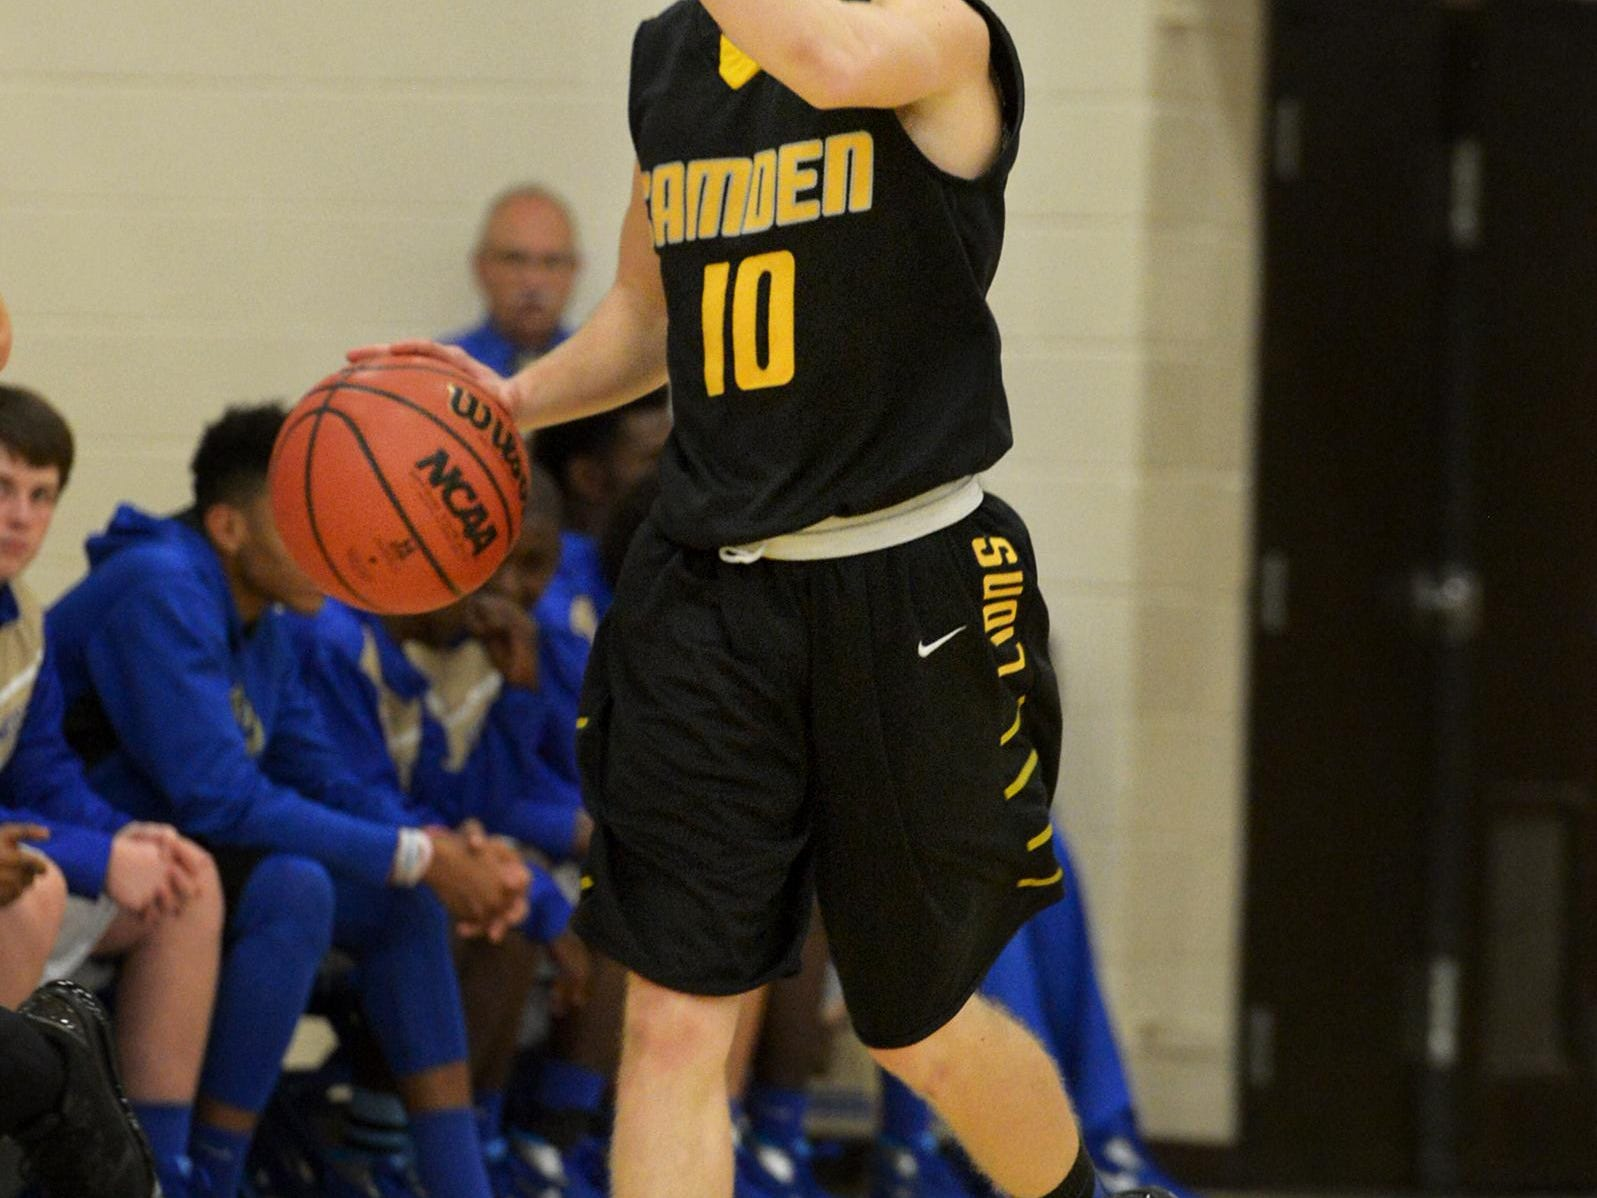 Camden's Tanner Johnson and the Lions have a tough game on Friday night against CreekWood.